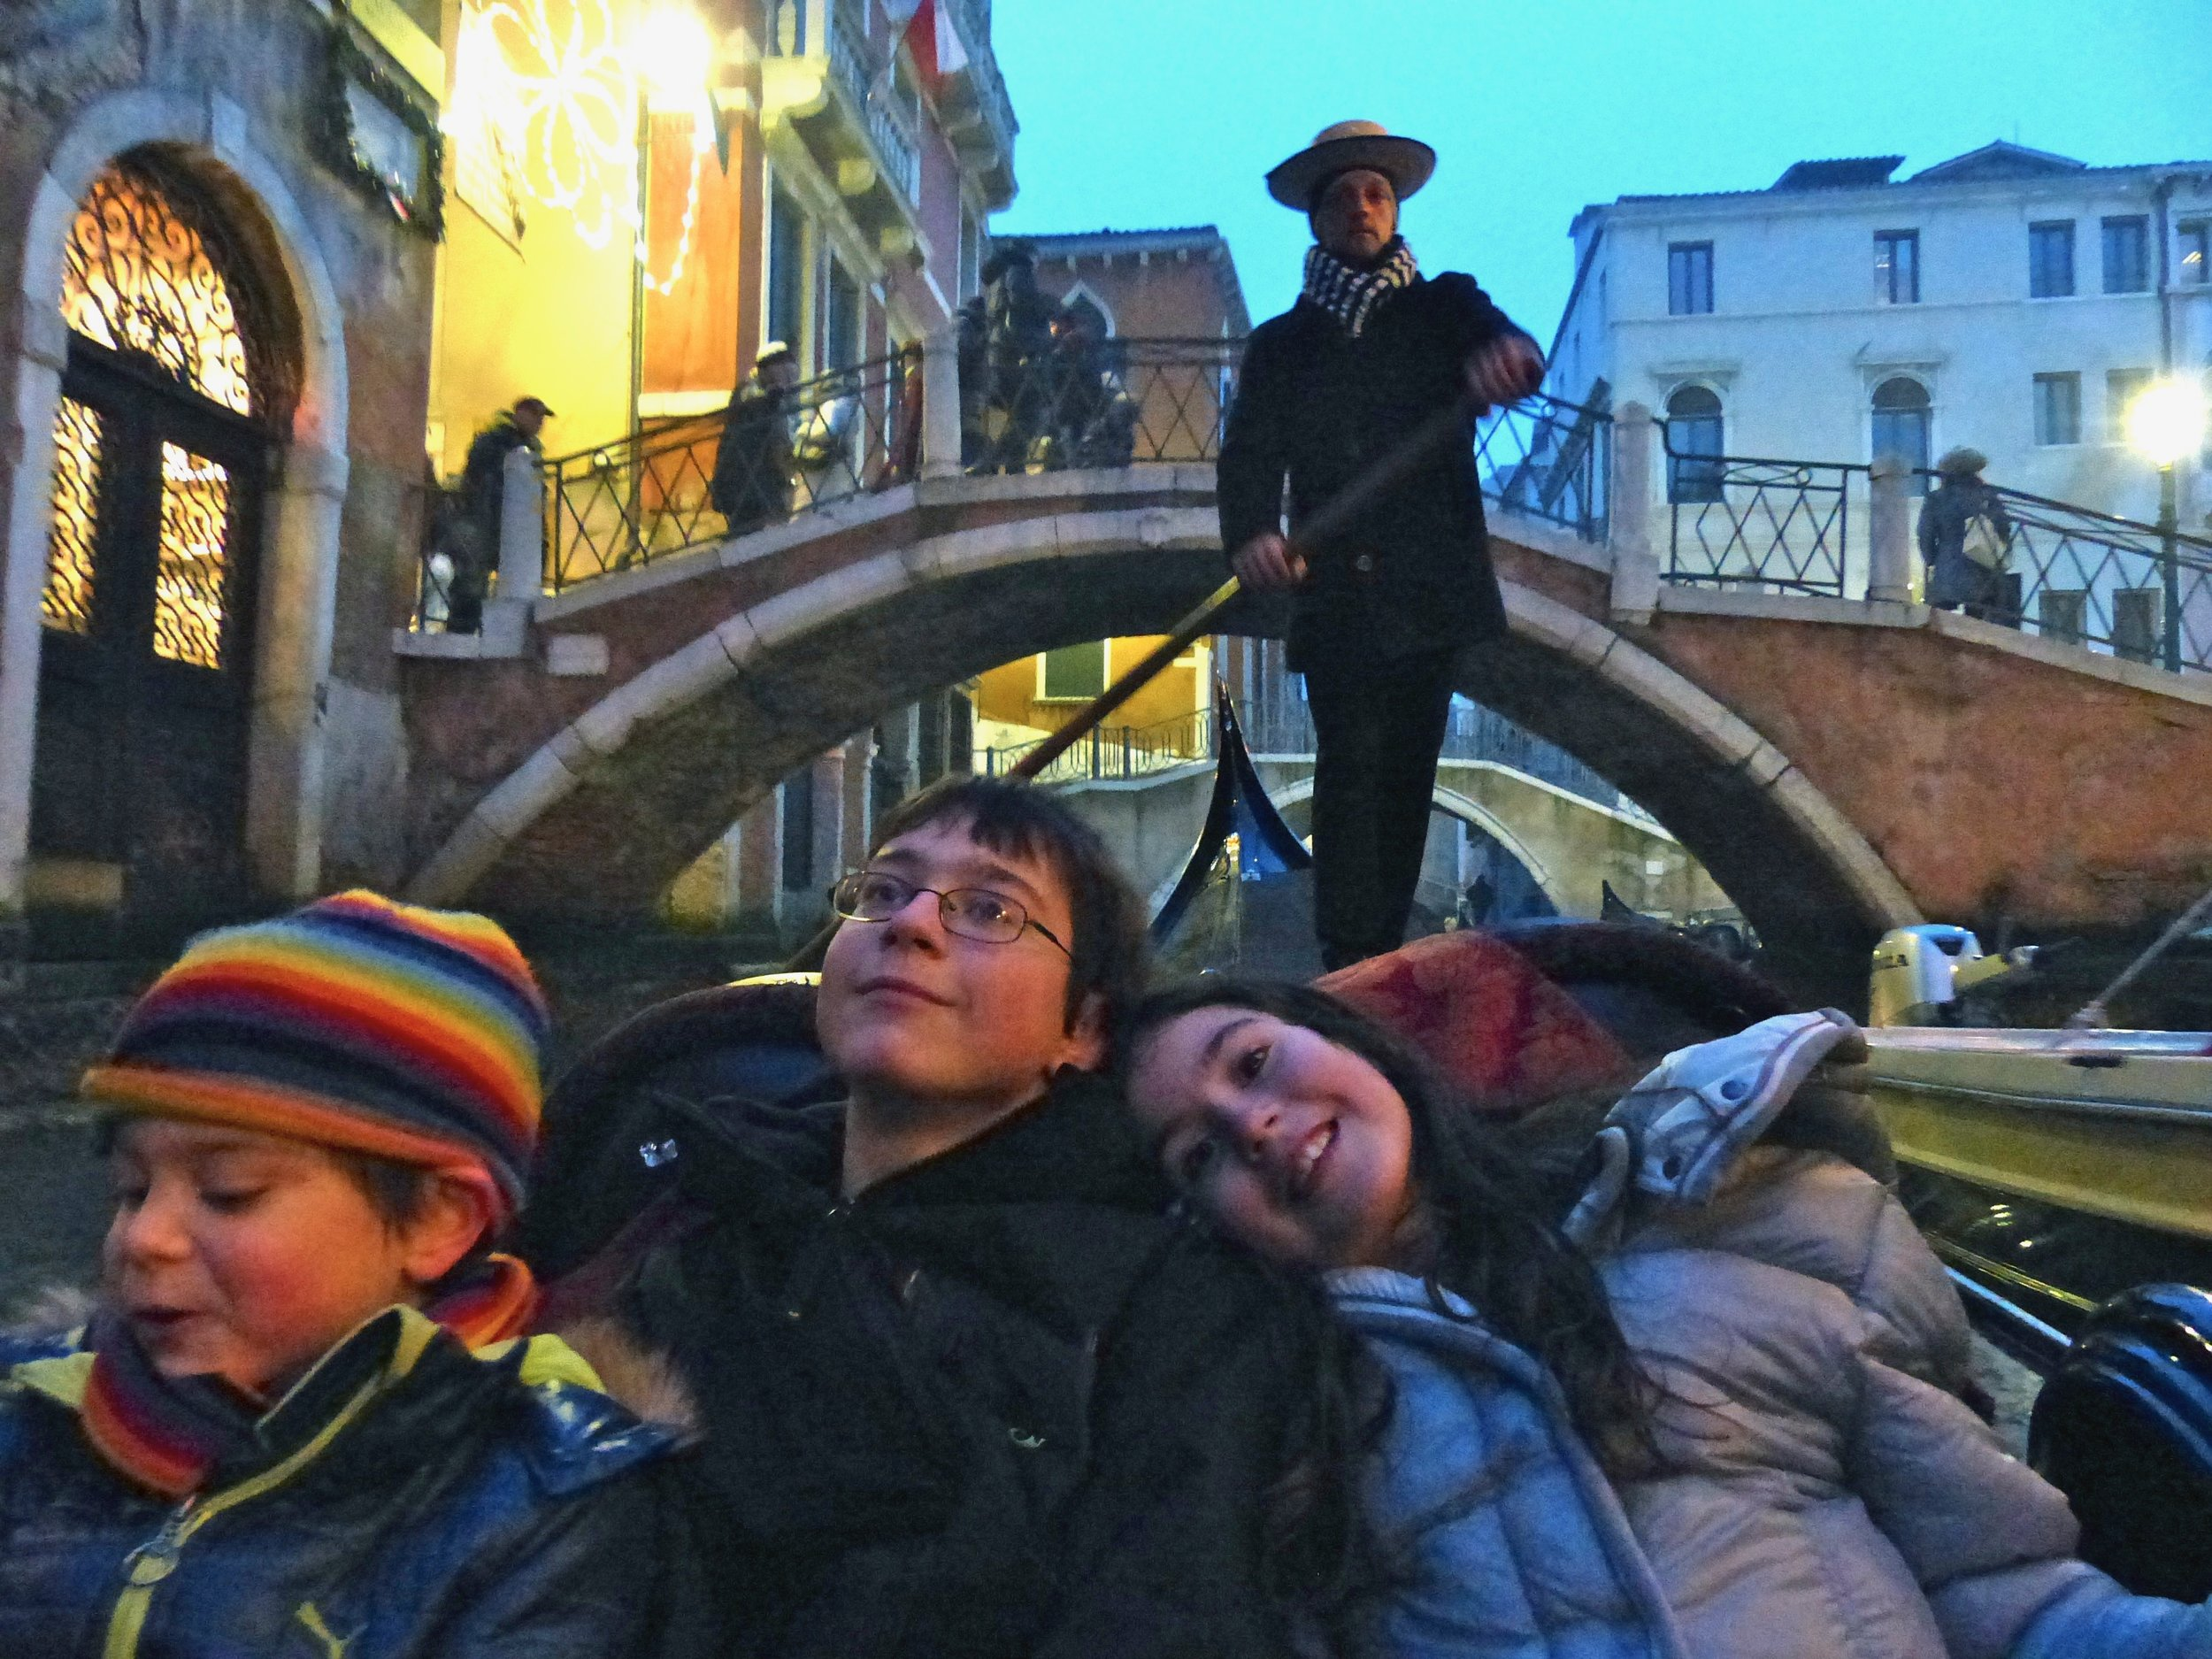 Kids and Gondola in Venice, italy